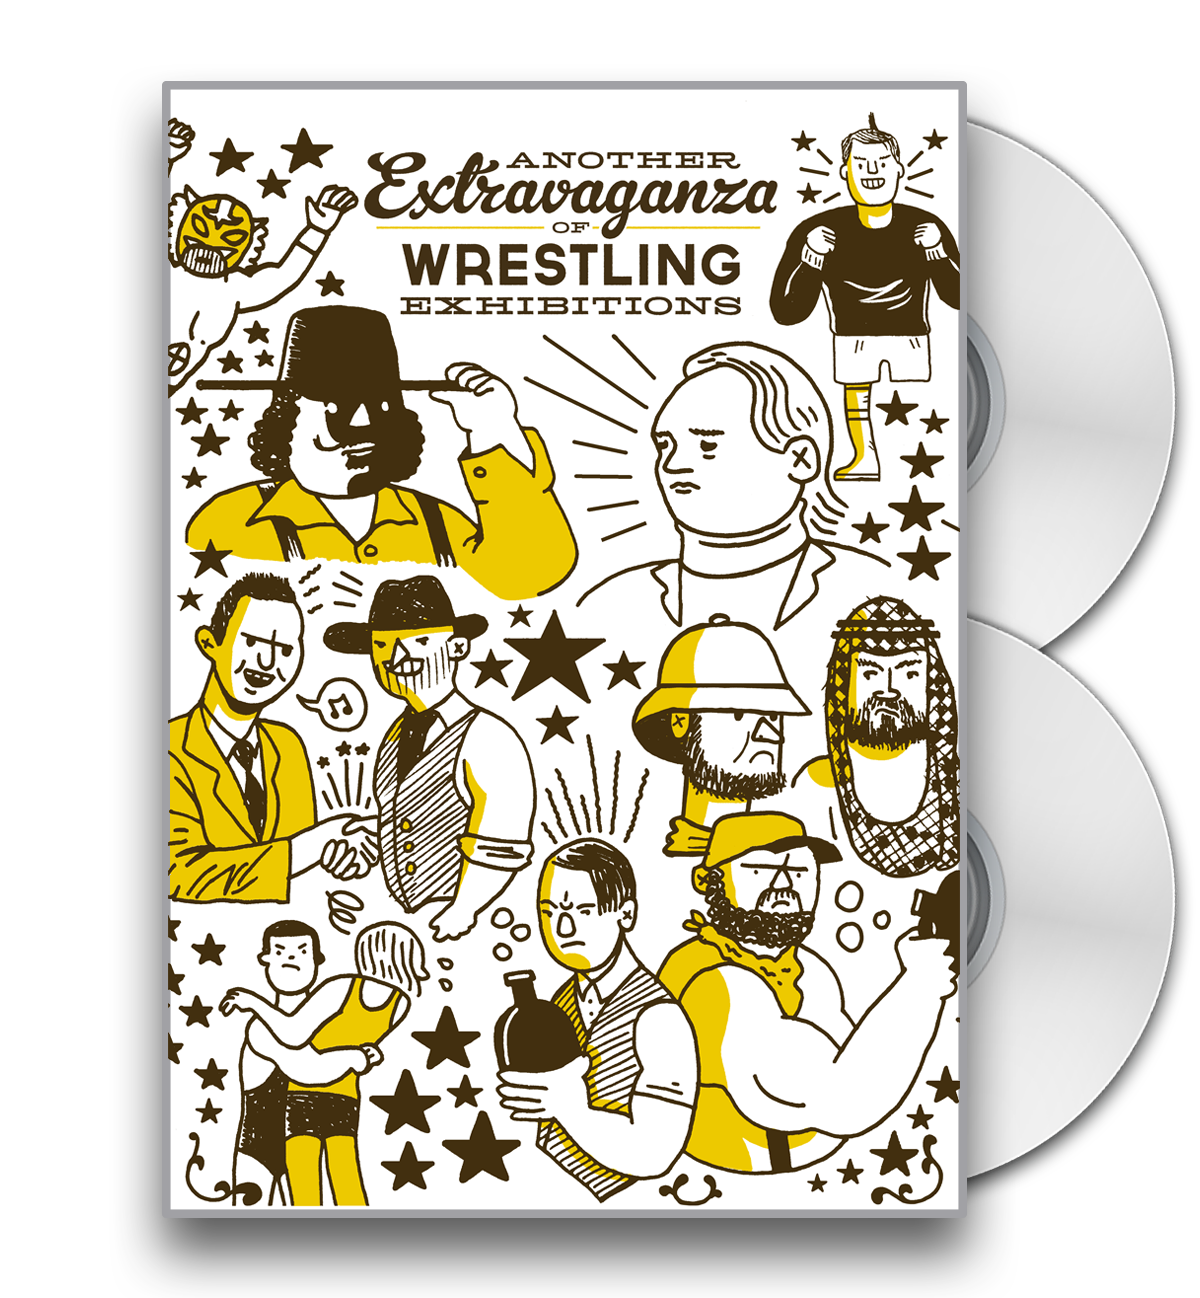 Another Extravaganza DVD artwork by Box Brown